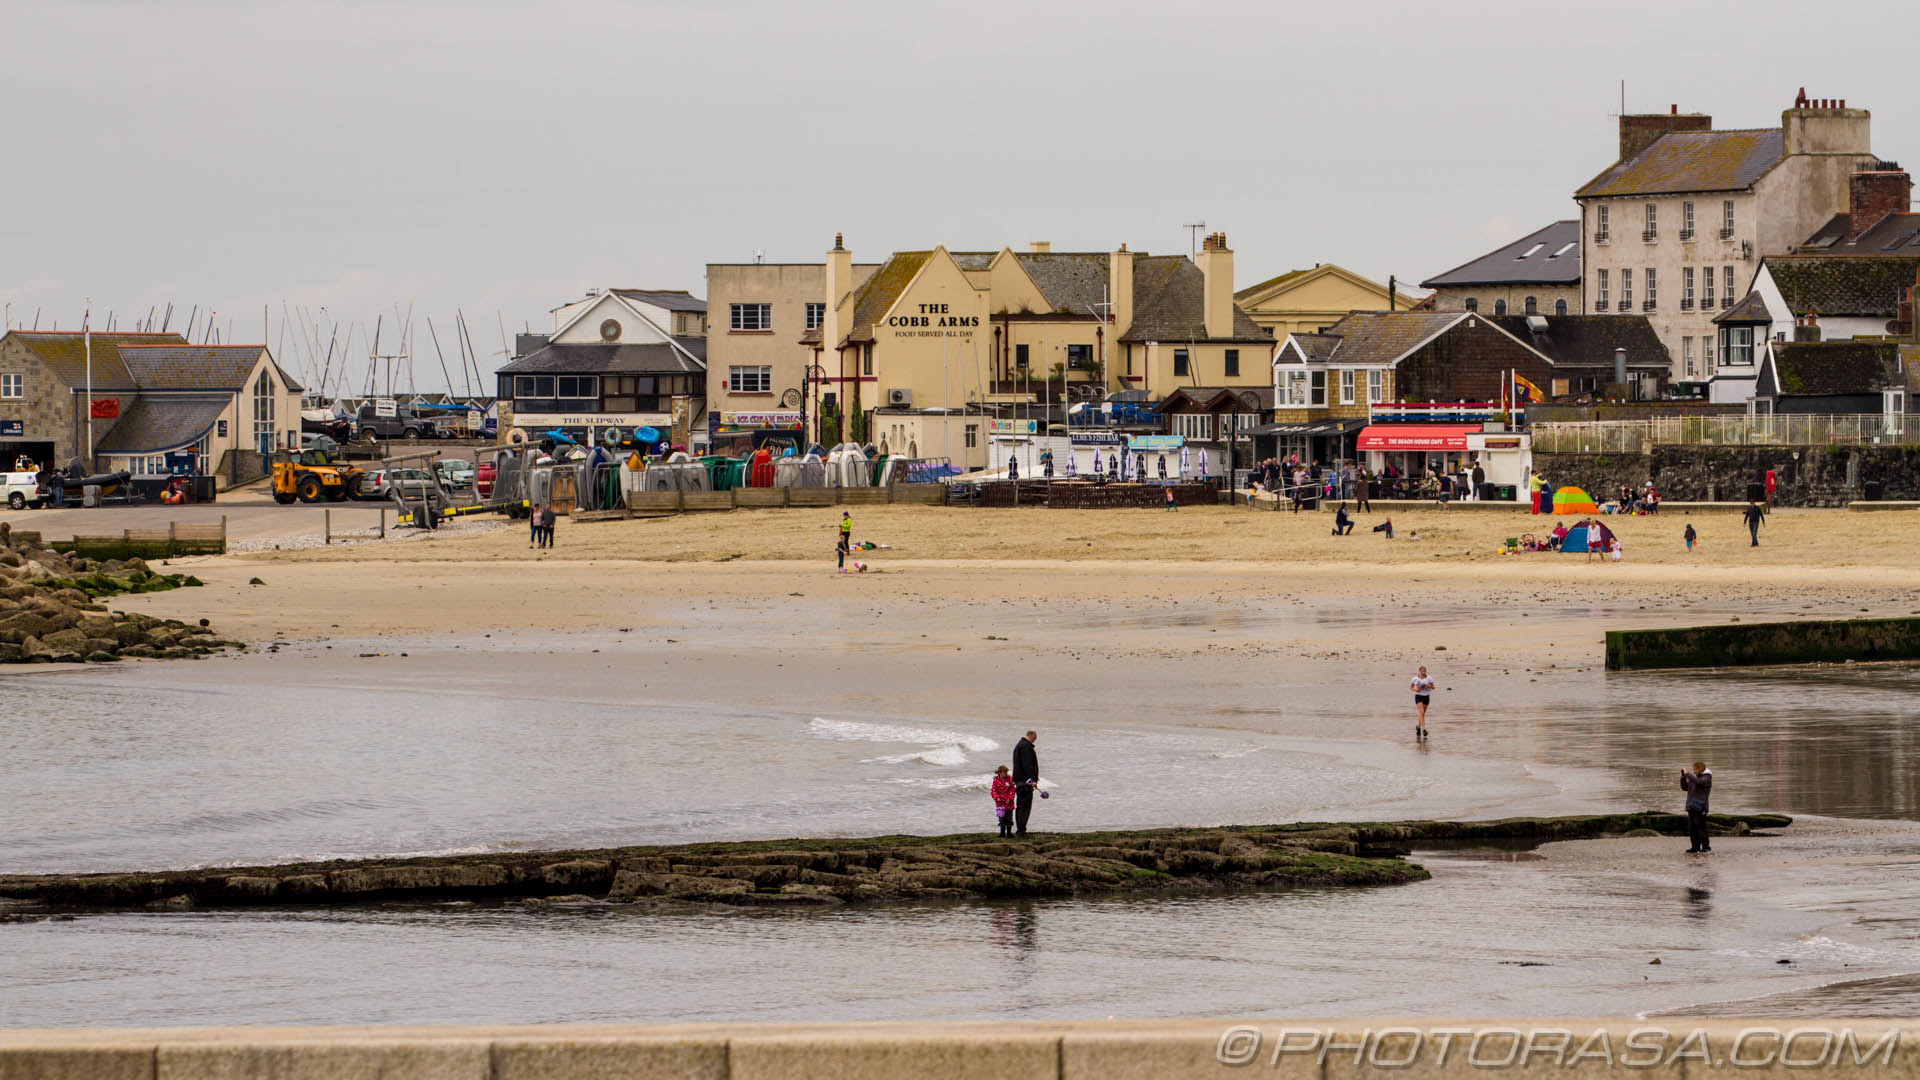 http://photorasa.com/lyme-regis/beach-and-cobb-arms-at-lyme-regis/